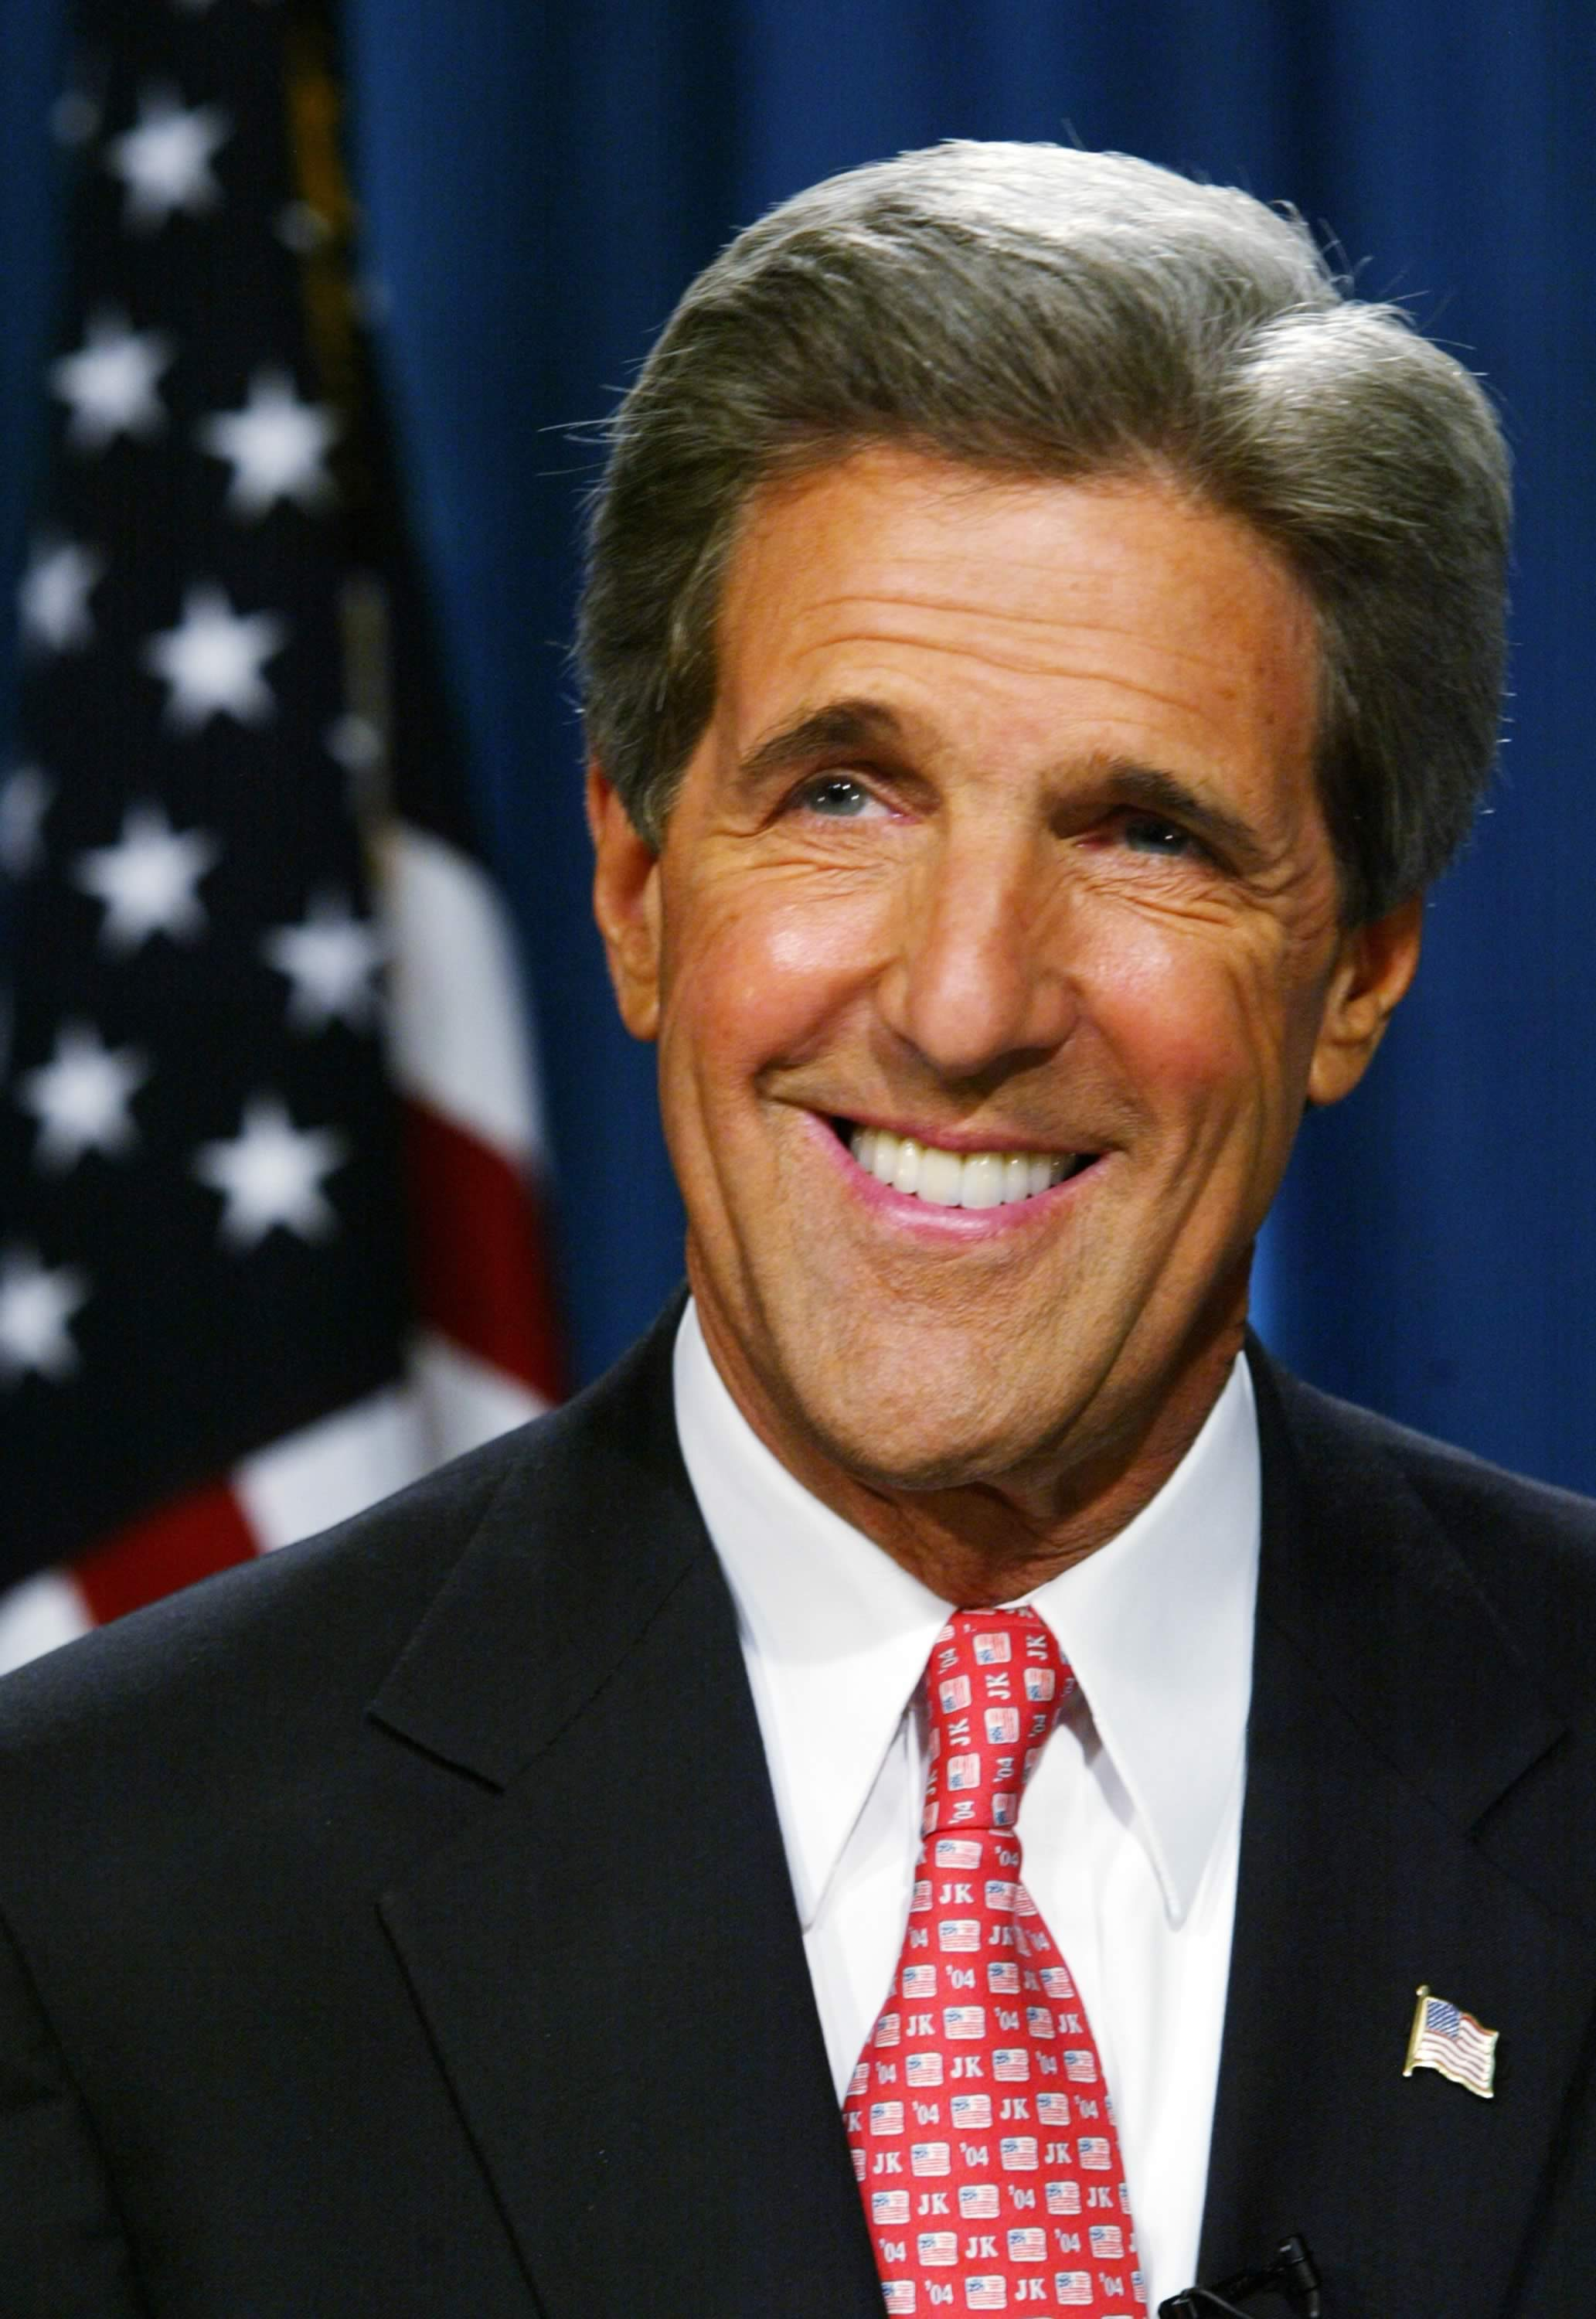 a biography of john kerry a president of the united states